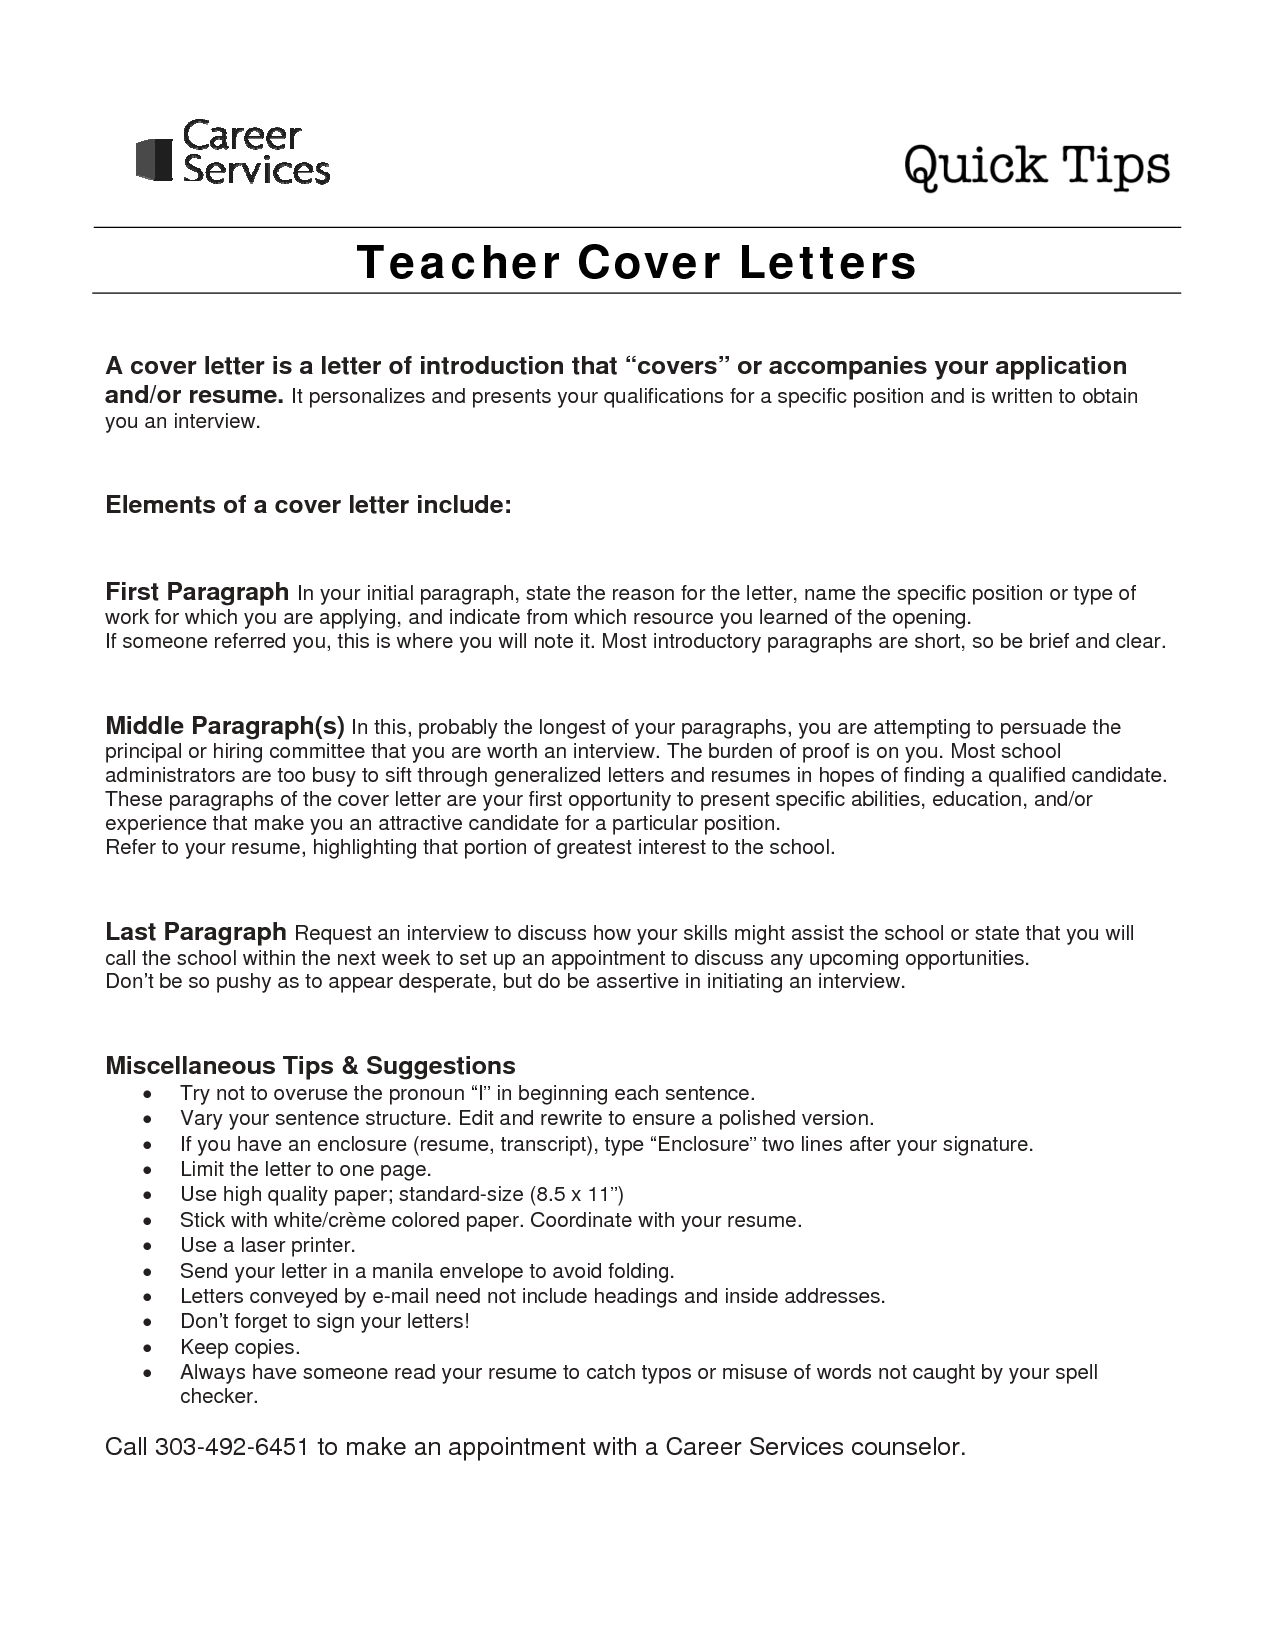 Nice Cover Letter: So You Leaves Impression   Http://resumesdesign.com/cover  Letter So You Leaves Impression/